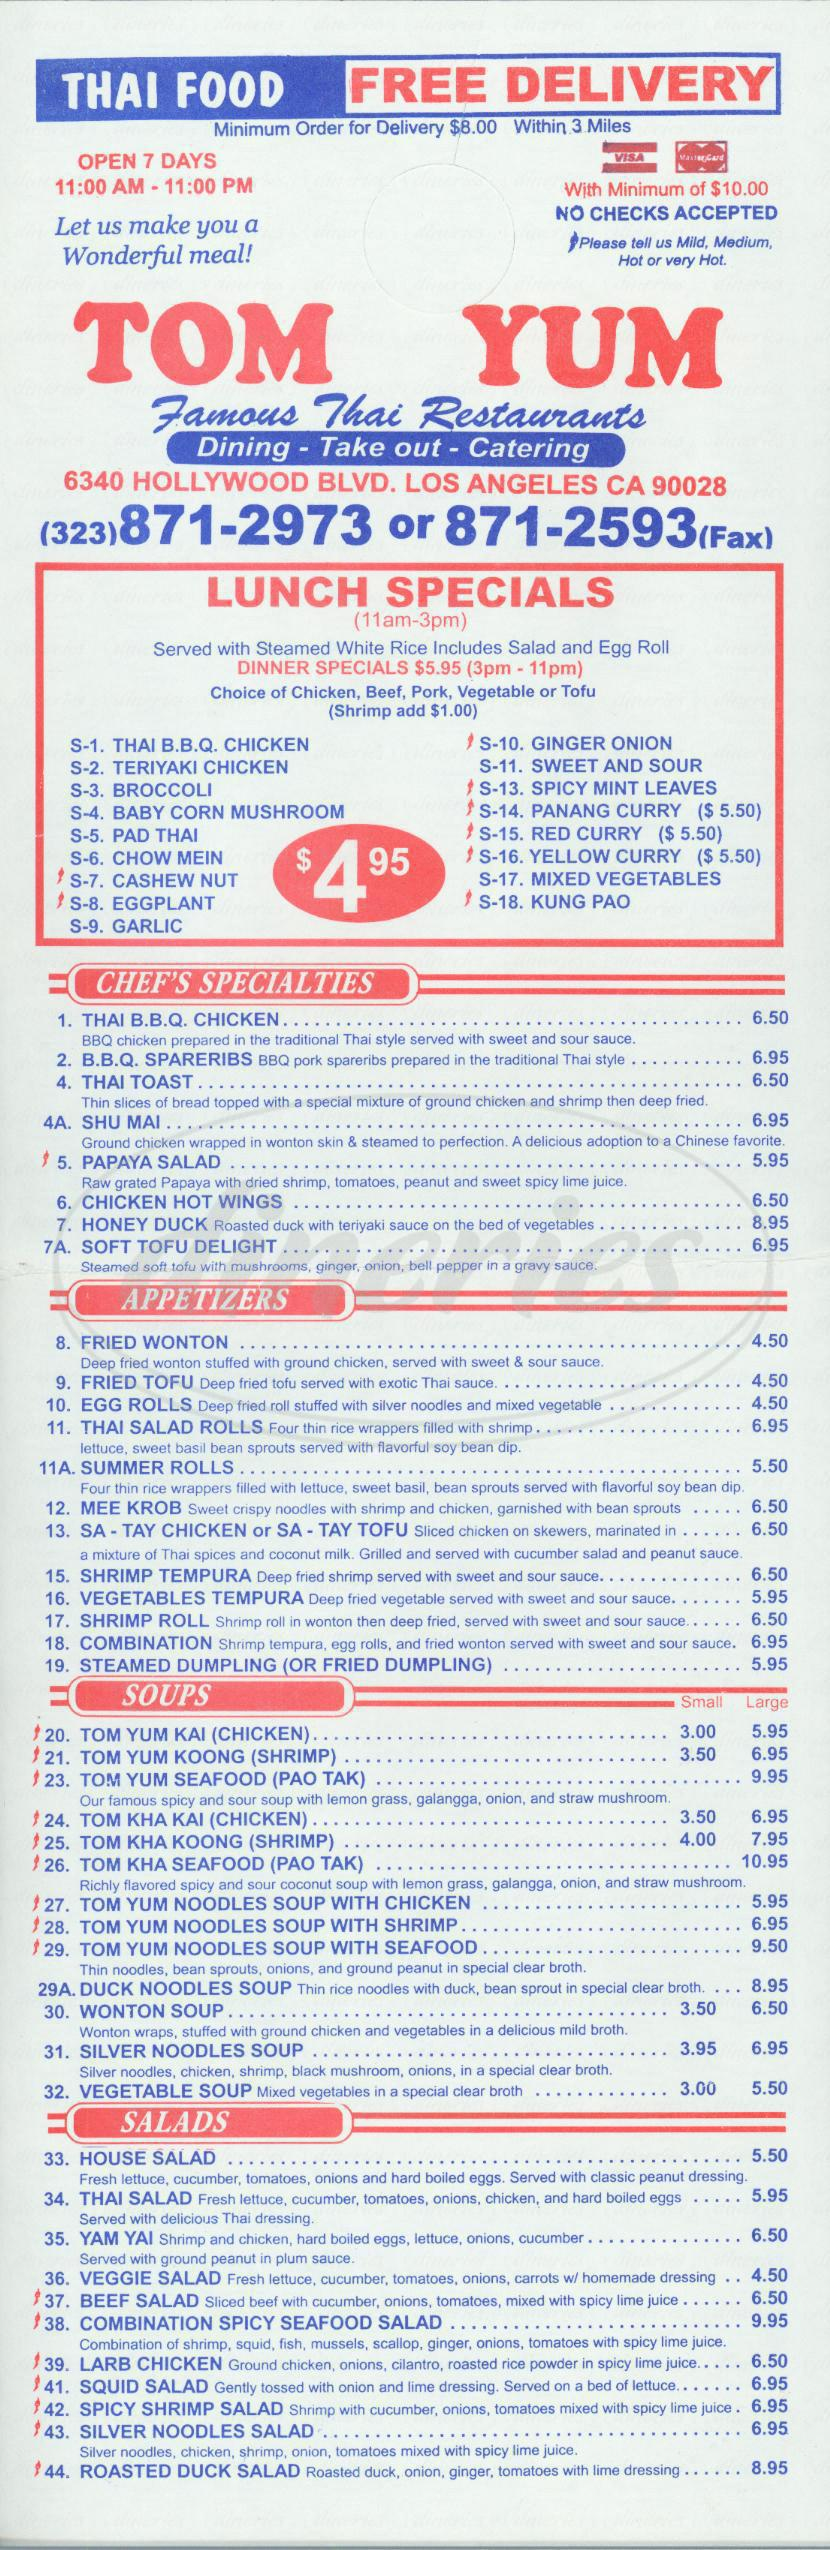 menu for Tom Yum Thai Restaurant